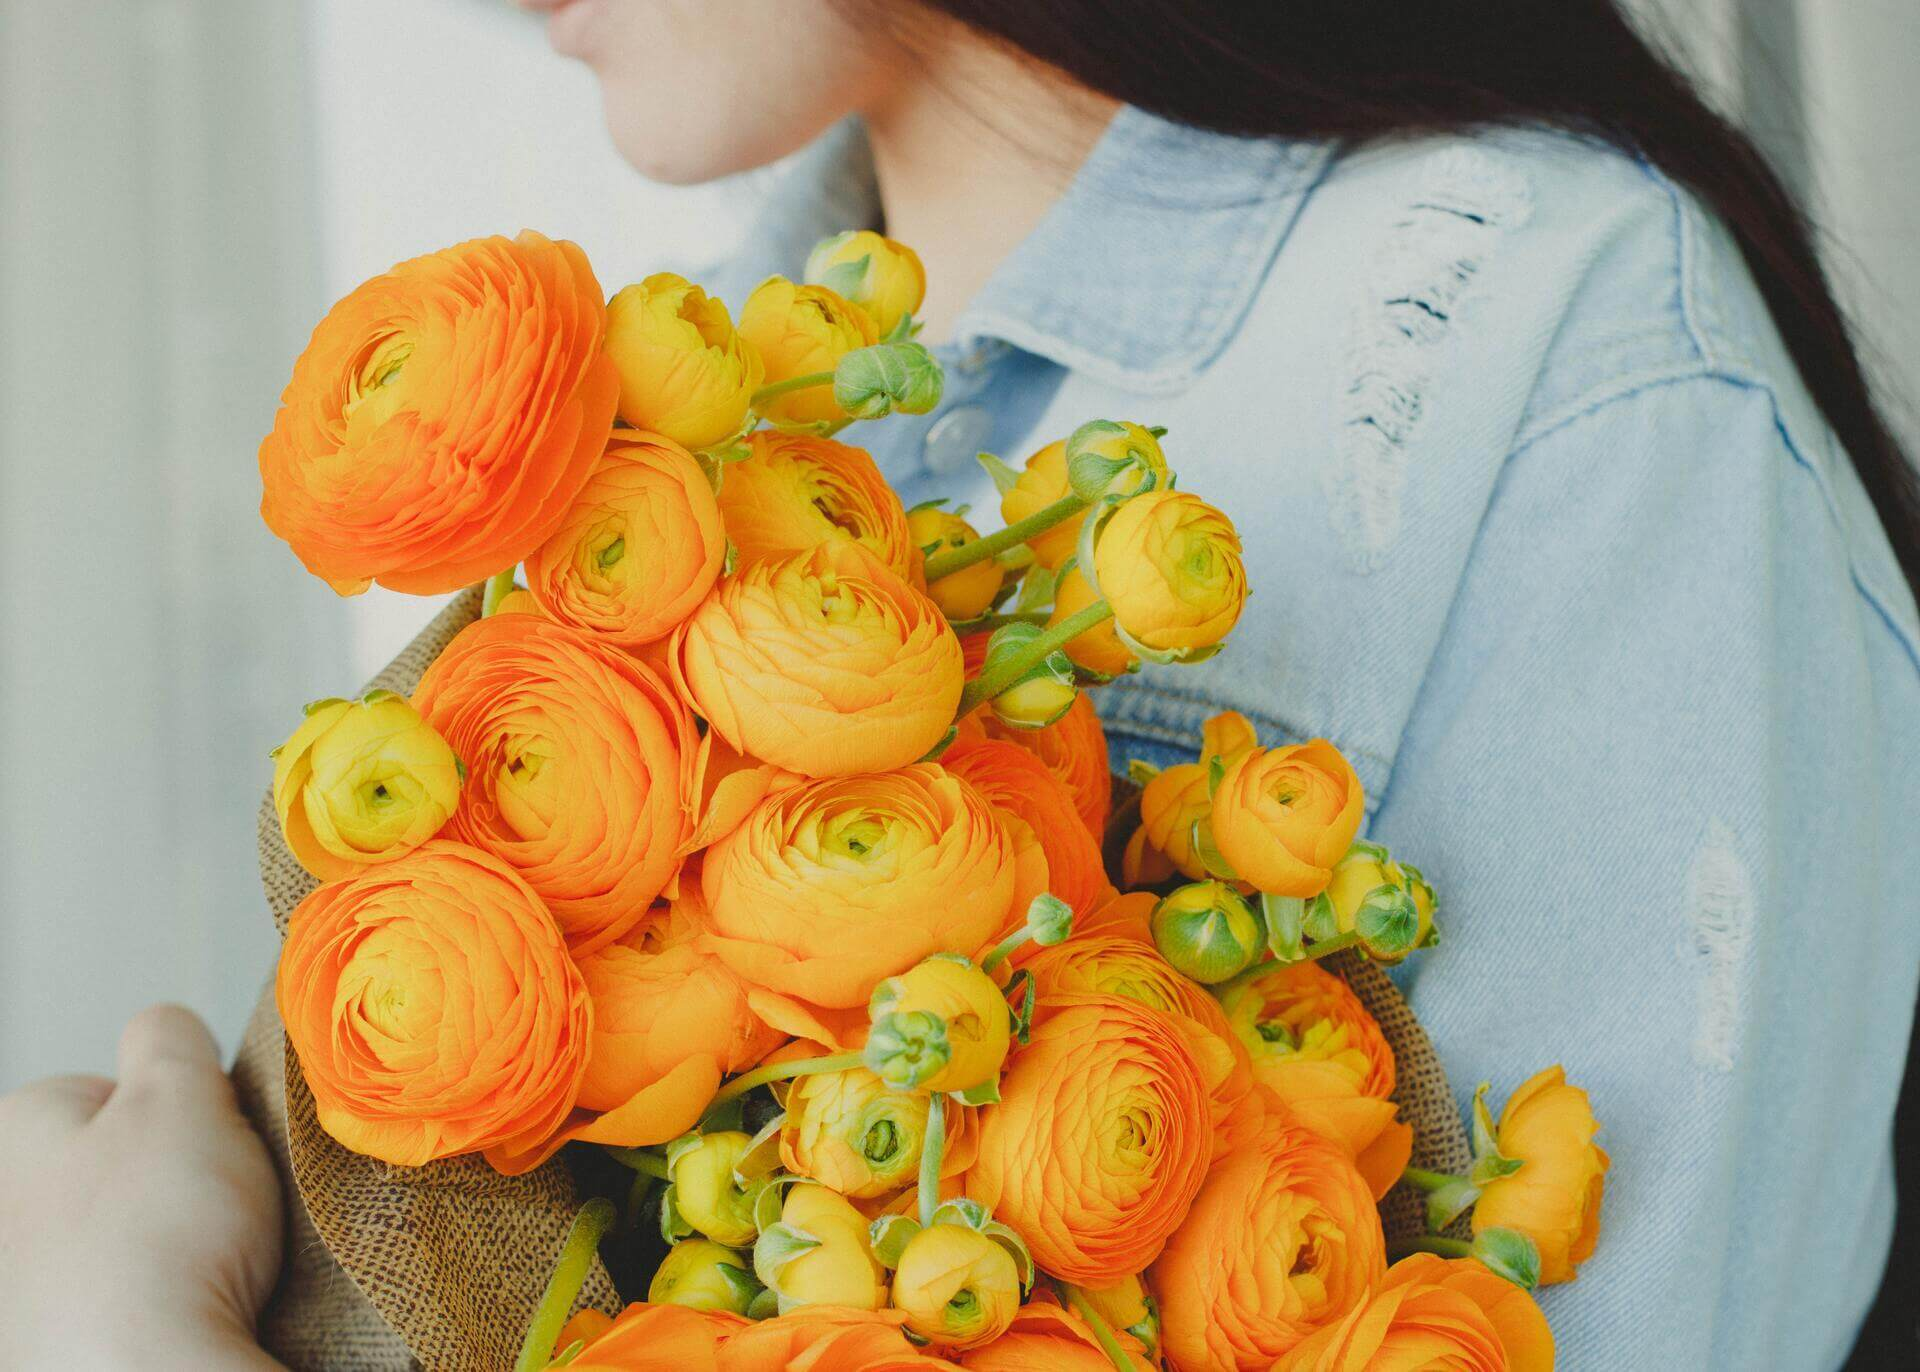 woman holding yellow flower bouquet